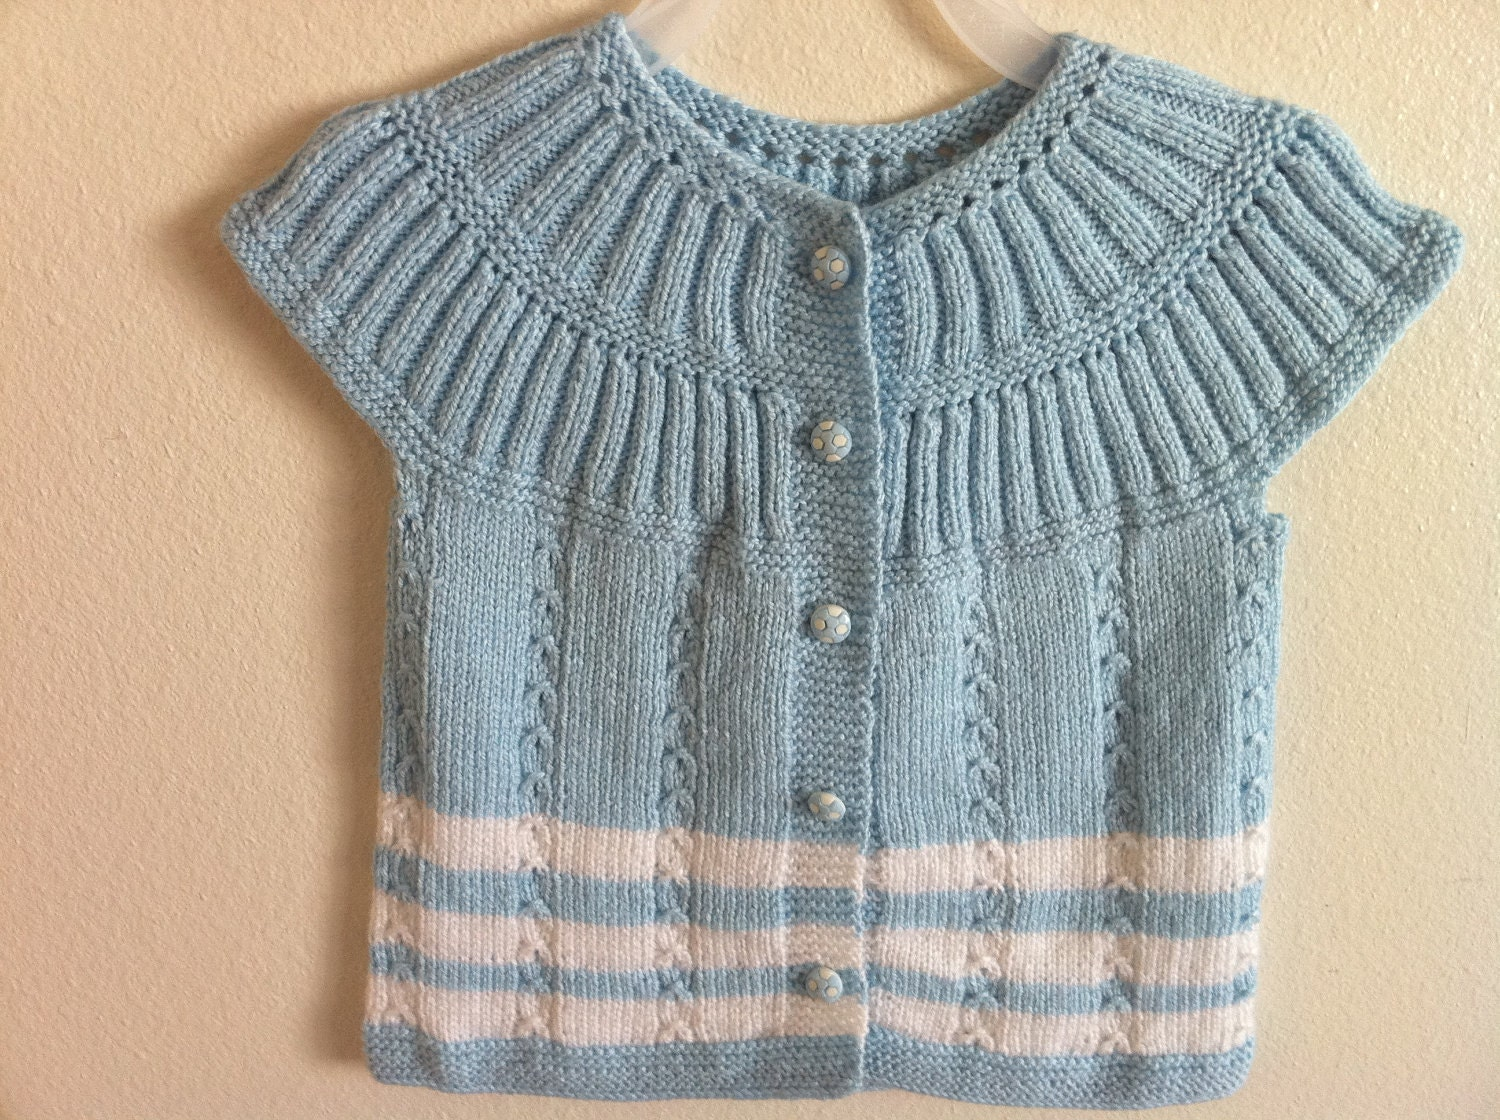 Knitting Patterns For Toddlers Vest : knitting baby vest 15 2 years old girl baby blue and white